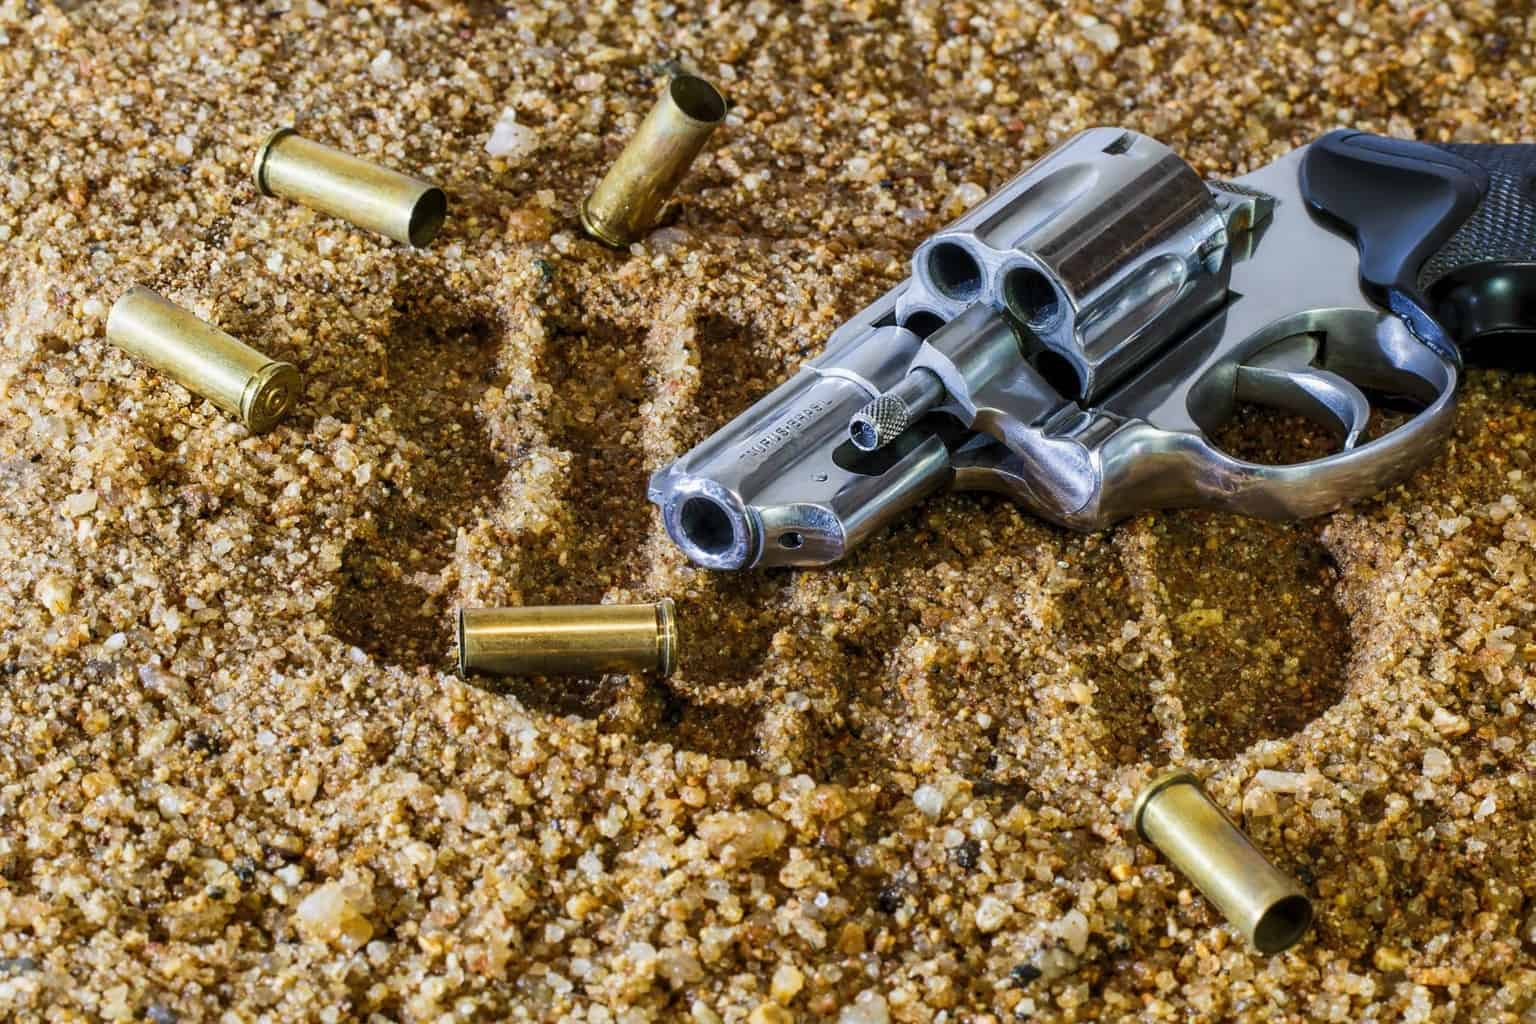 A photo of a gun on the ground surrounded by used bullets at one of the best gun ranges in Ohio